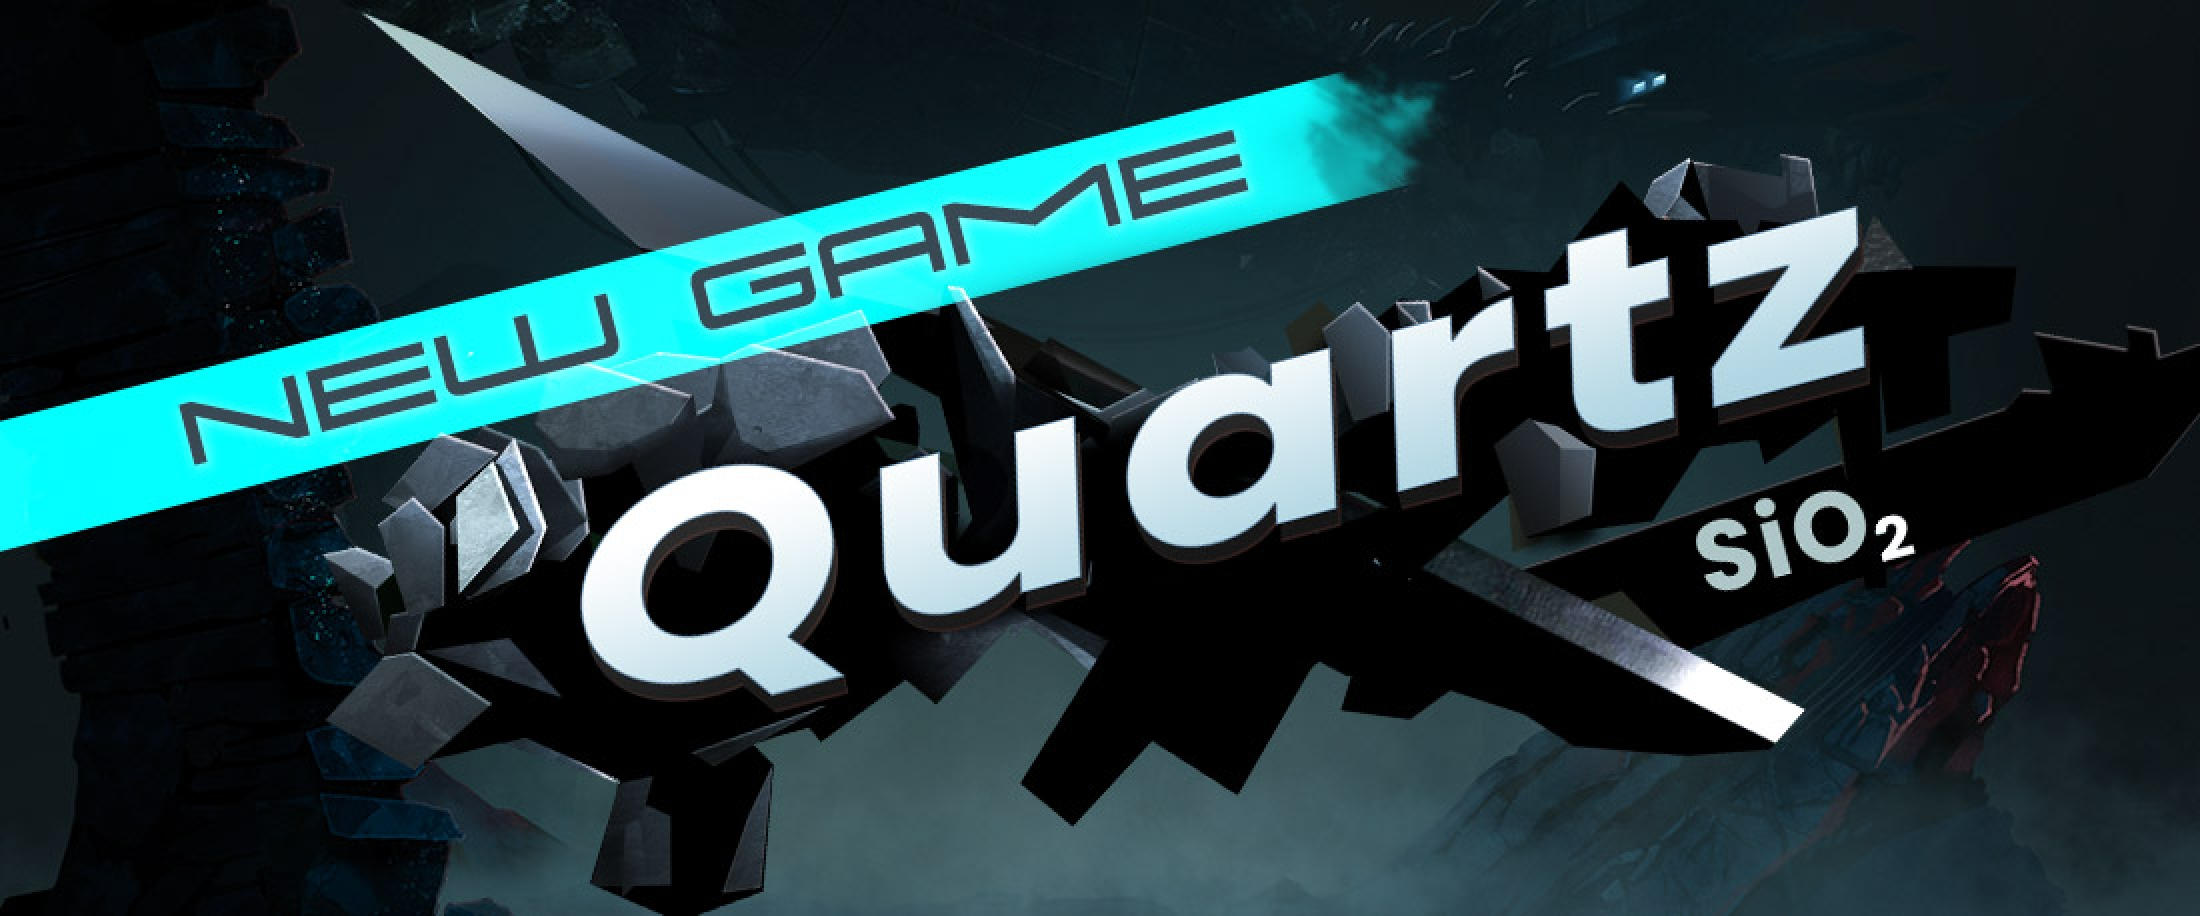 The Quartz SiO2 Online Slot Demo Game by Lady Luck Games